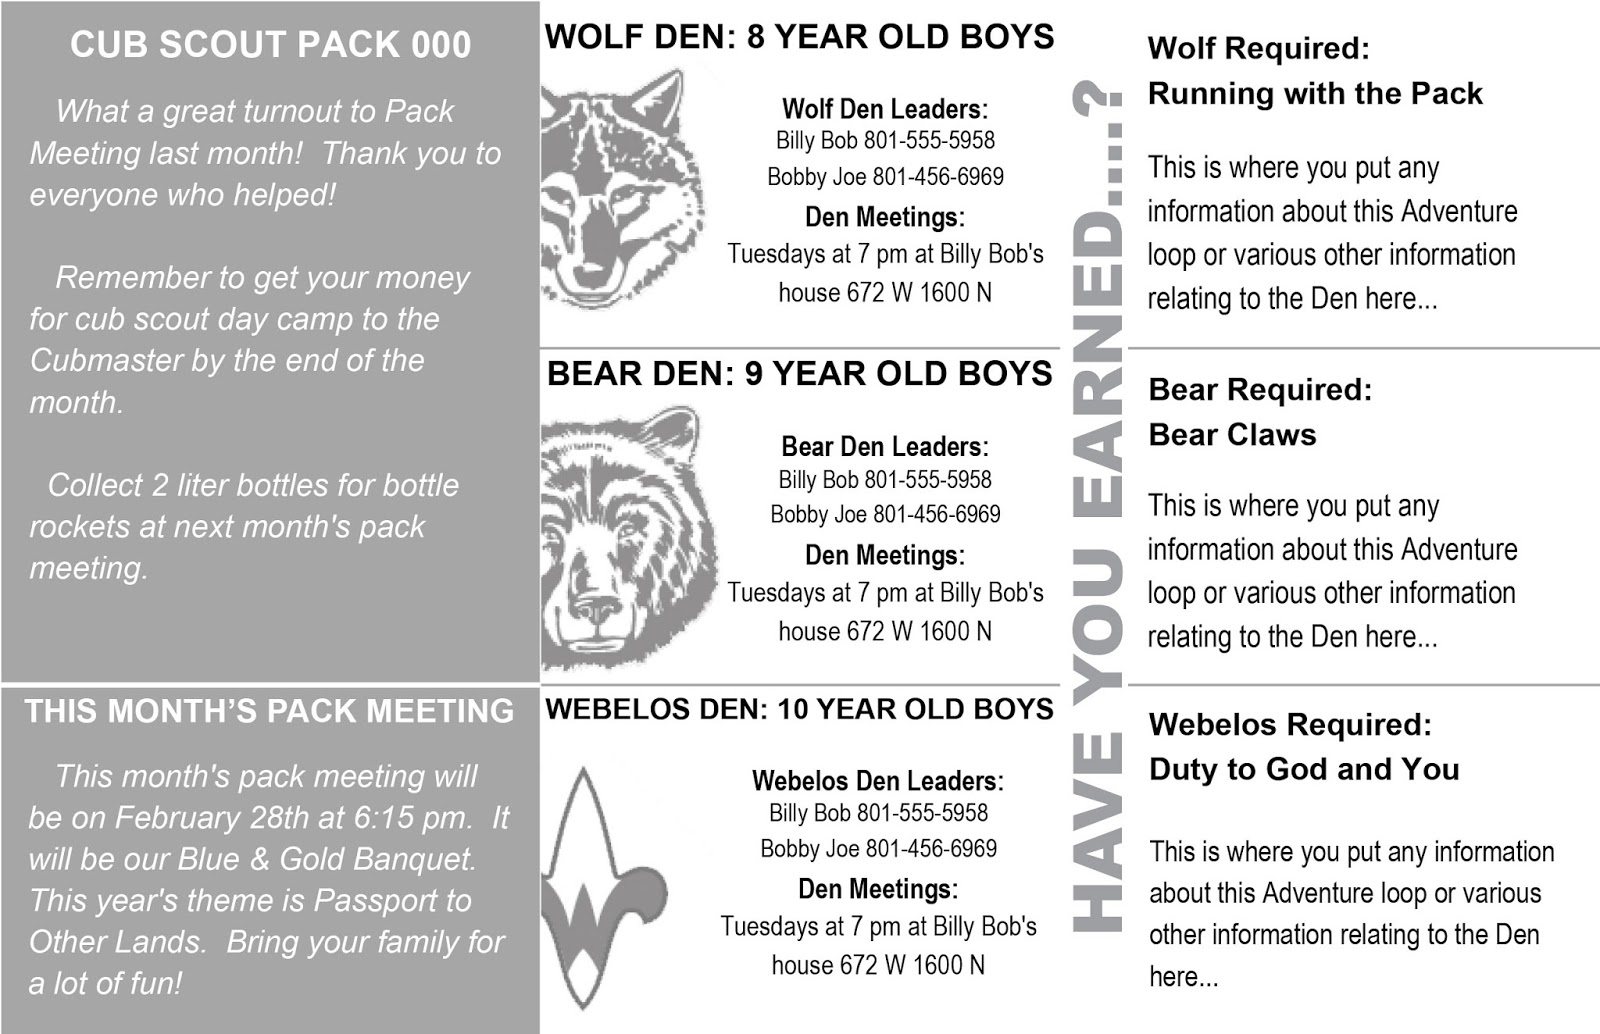 akela s council cub scout leader training cub scout newsletter